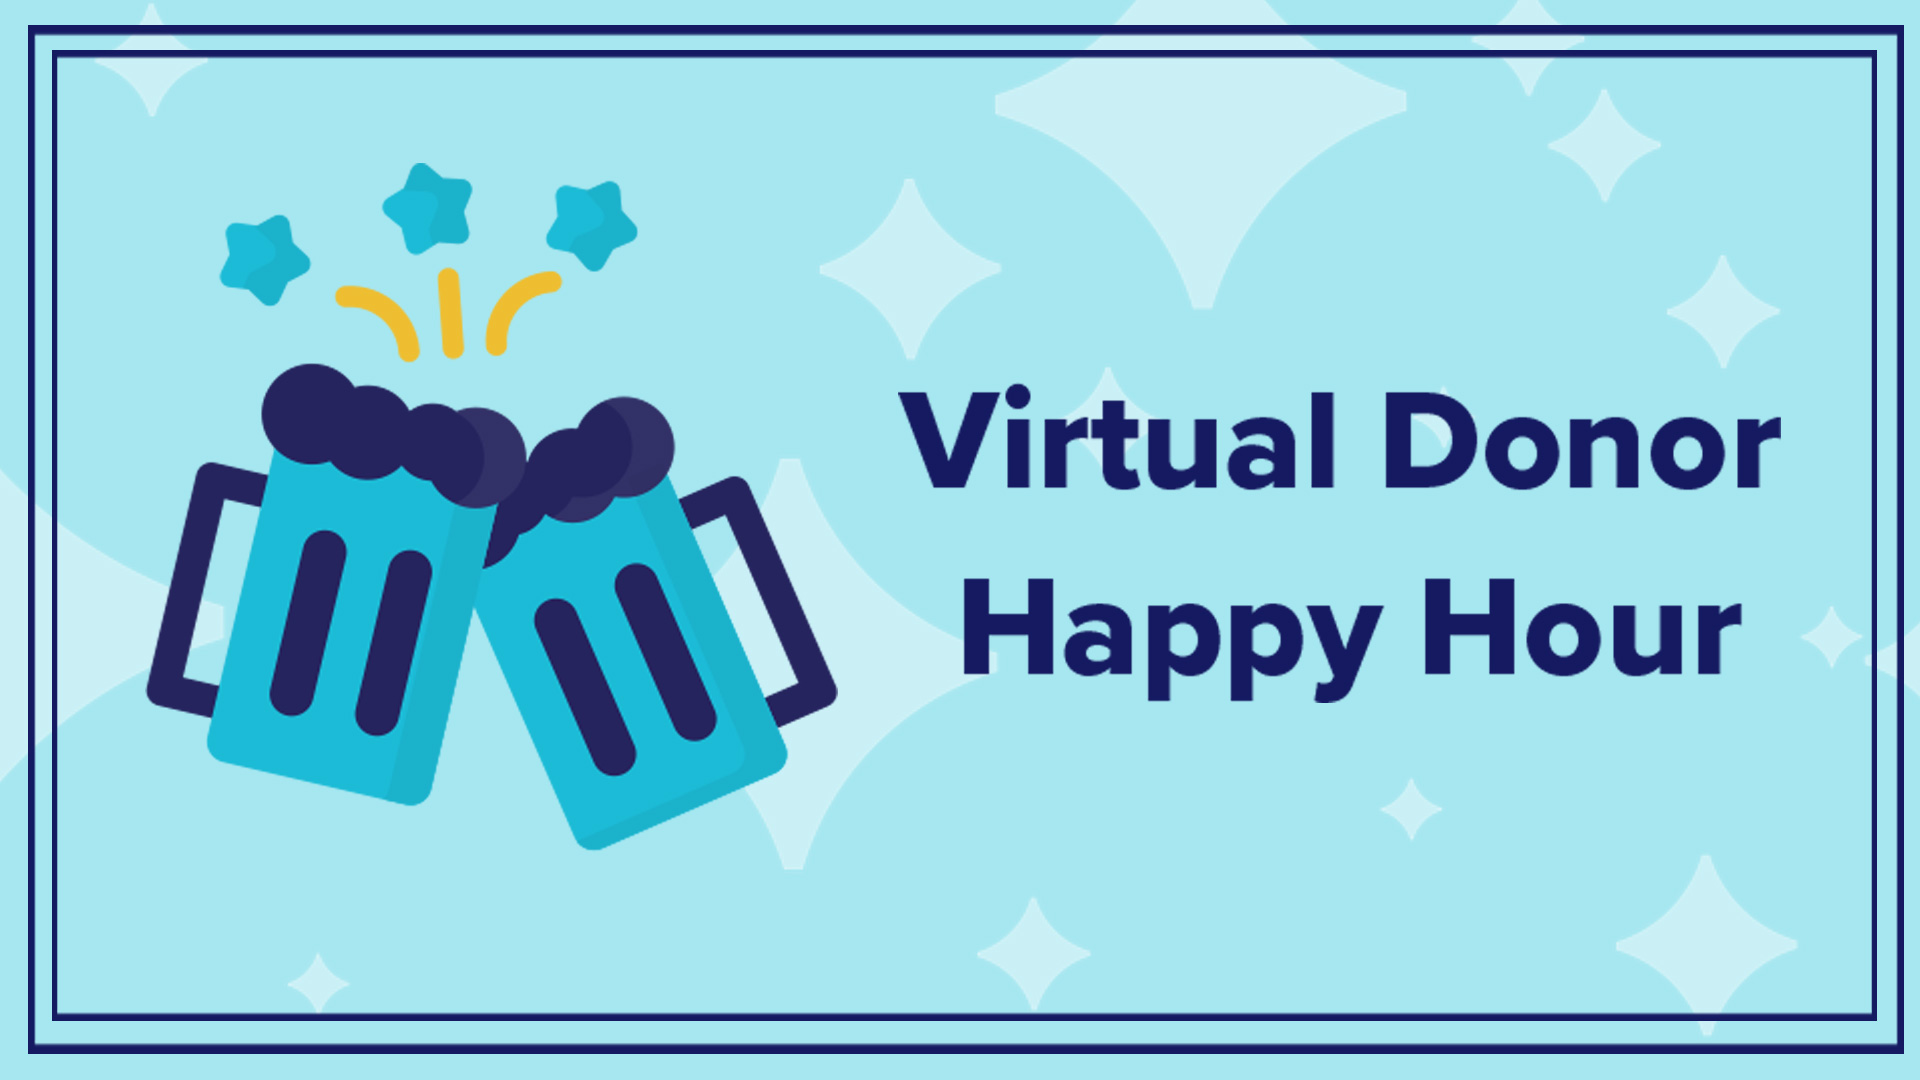 Join us again soon for another Virtual Donor Happy Hour!